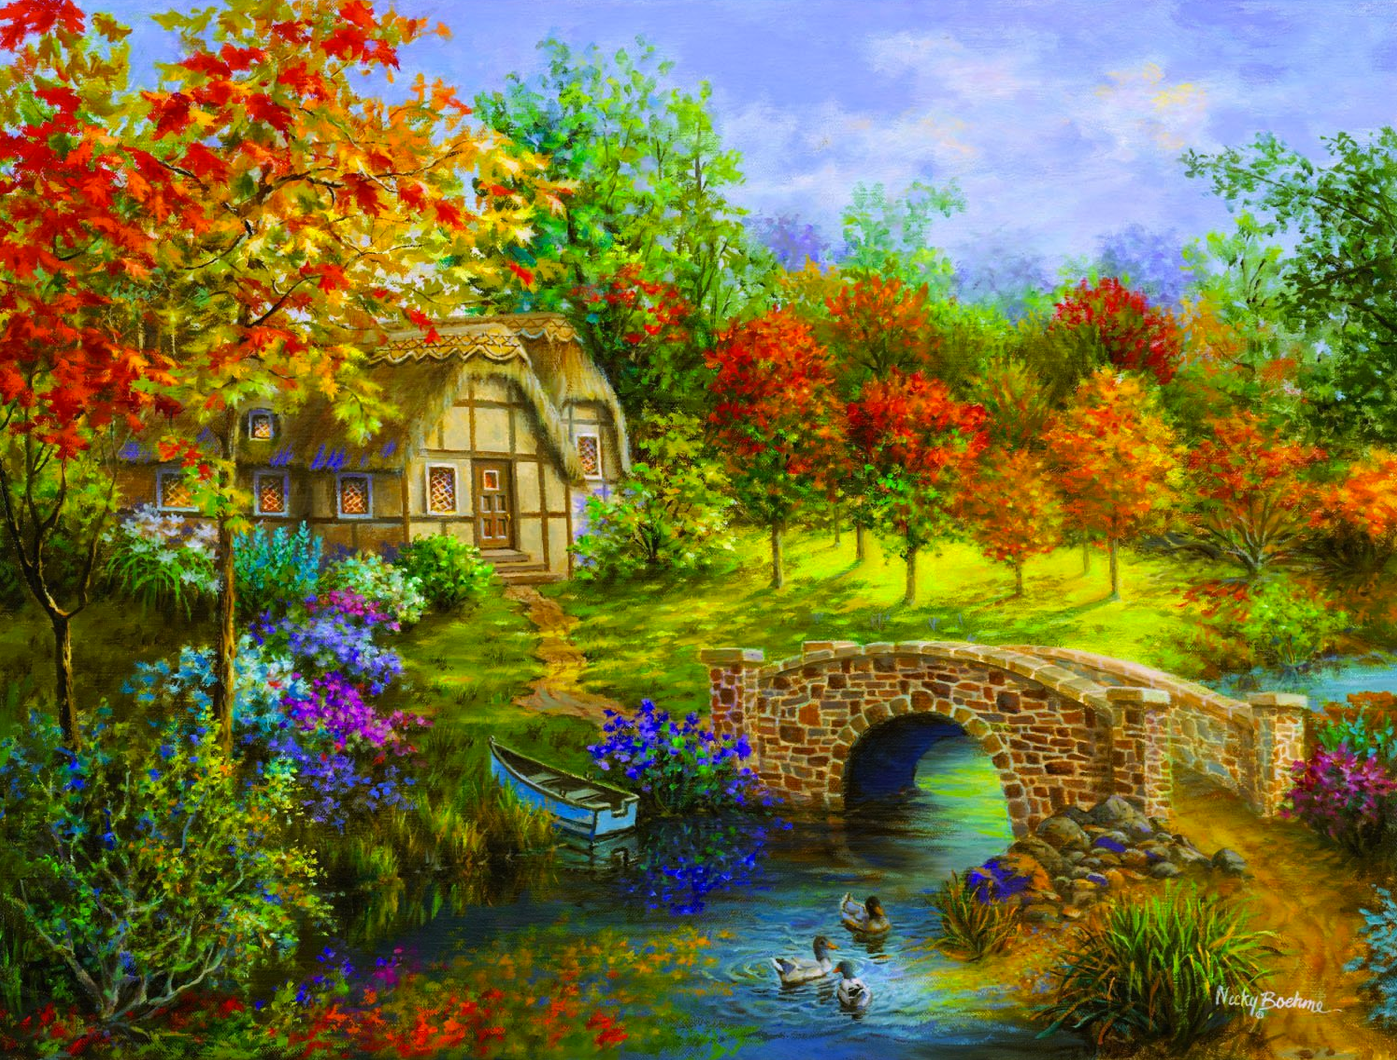 3000pc Jigsaw Puzzle-Autumn Beauty by Nicky Boehme